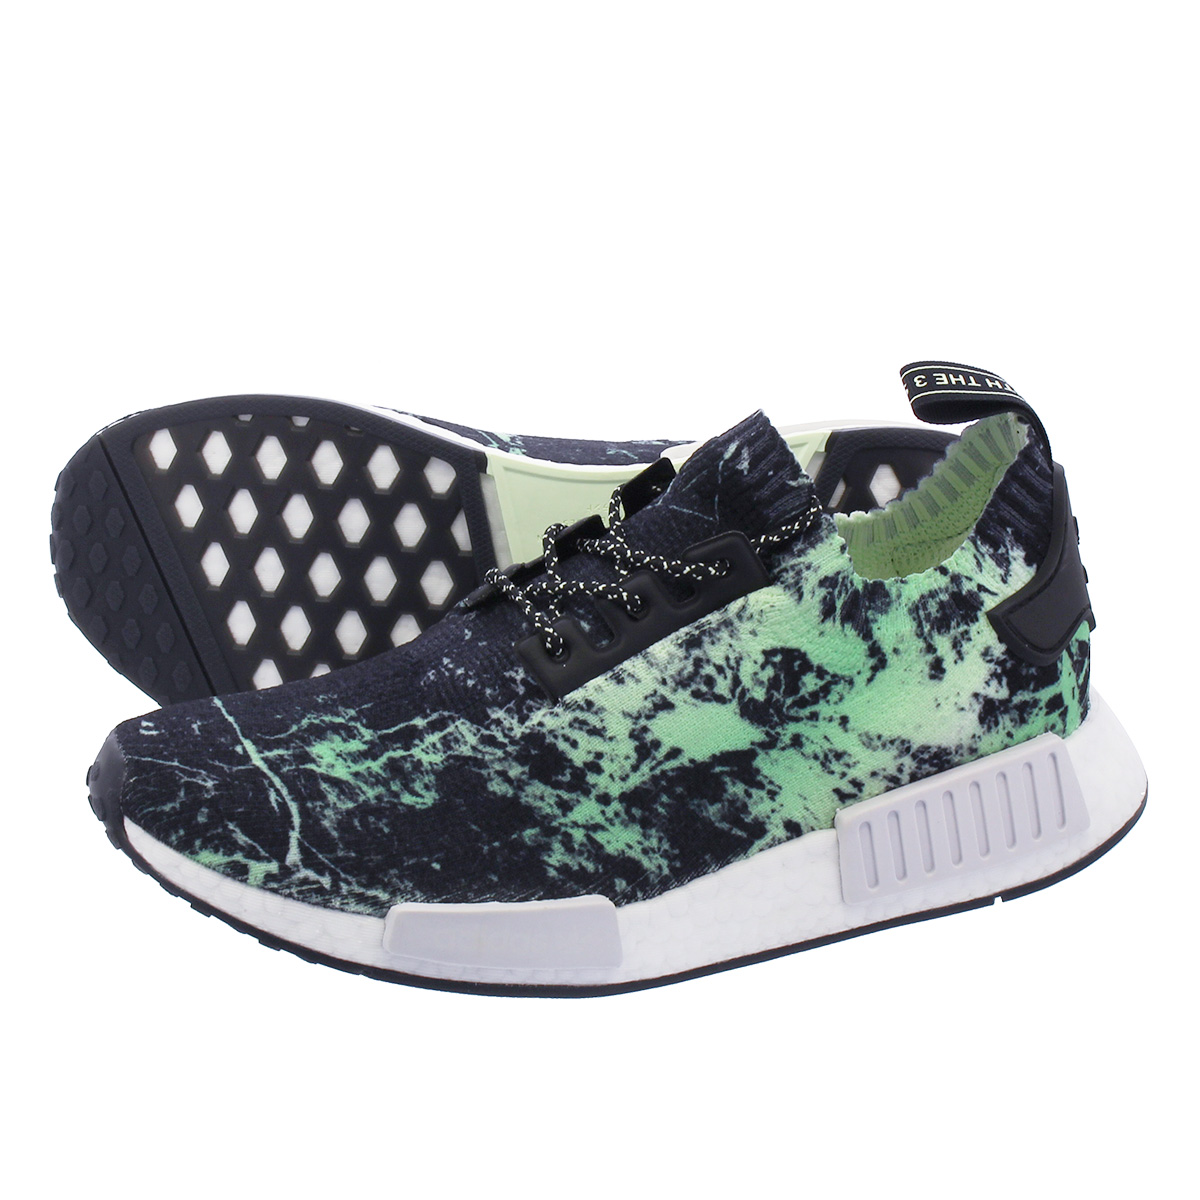 info for 626a1 d027d adidas NMD R1 PK Adidas nomad R1 PK BLACK/WHITE/GREEN bb7996